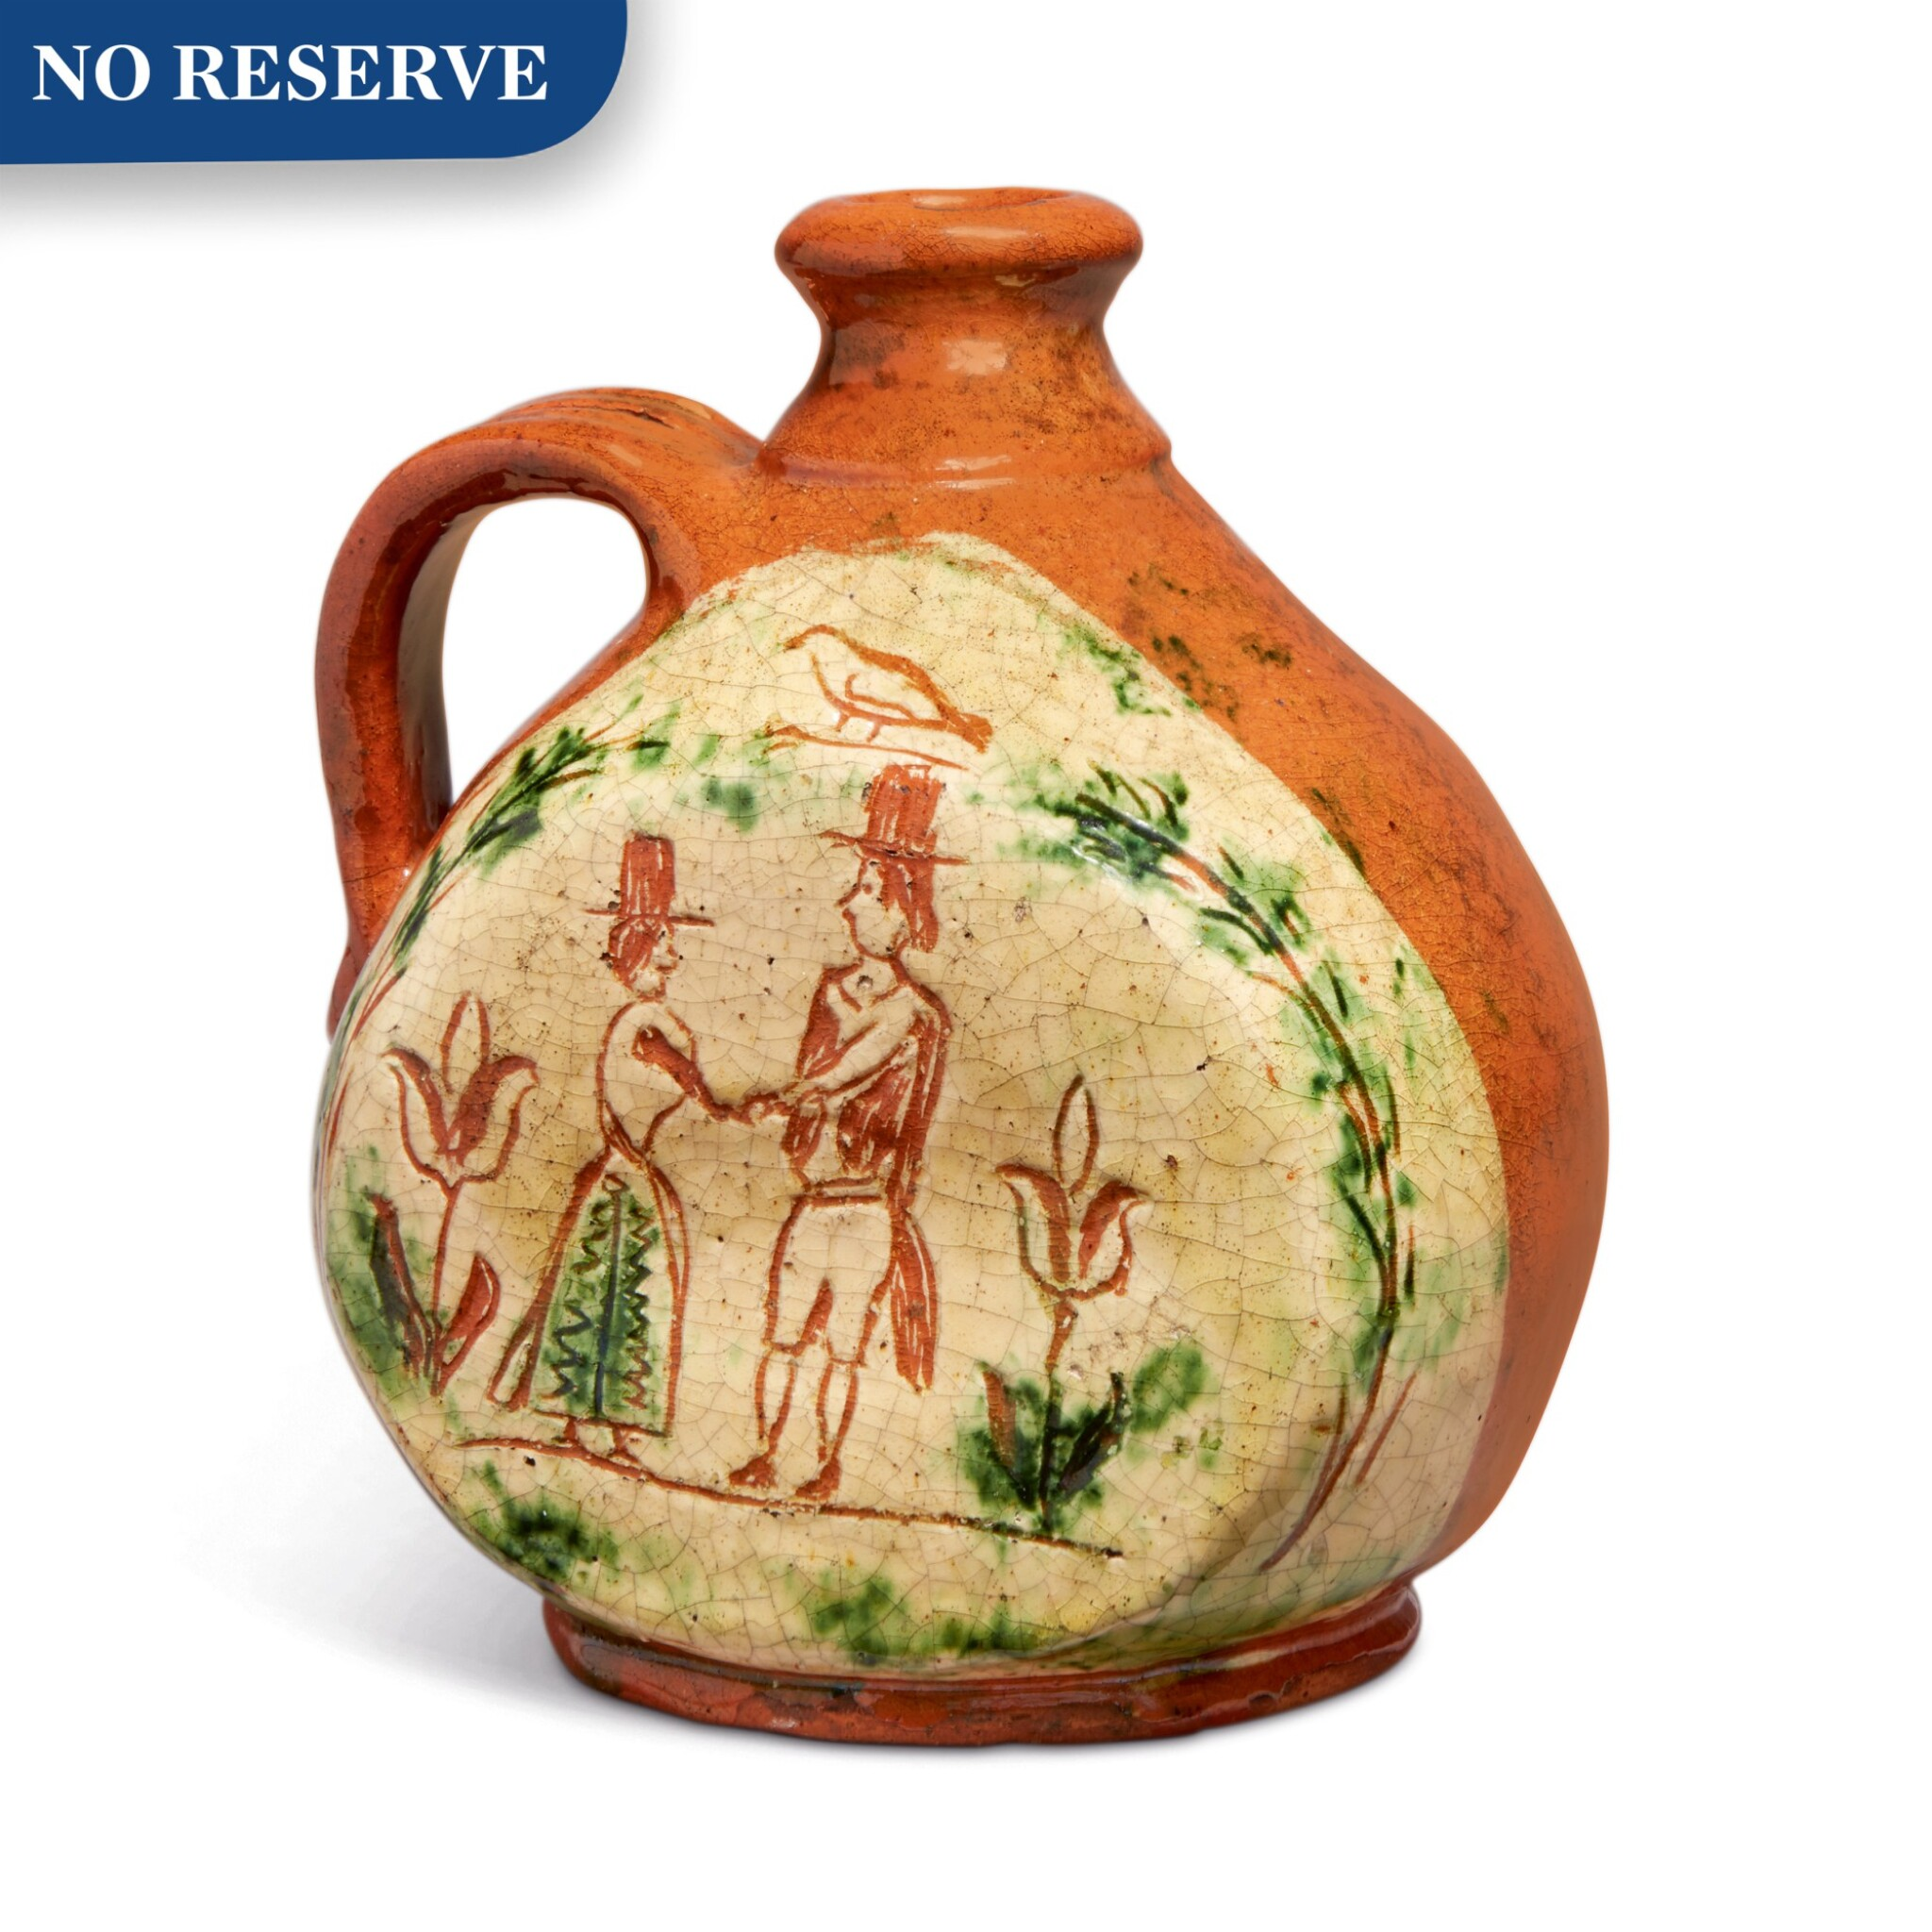 View full screen - View 1 of Lot 303. Rare Glazed Sgraffito and Slip-Decorated Redware Jug, Pennsylvania, dated 1797.